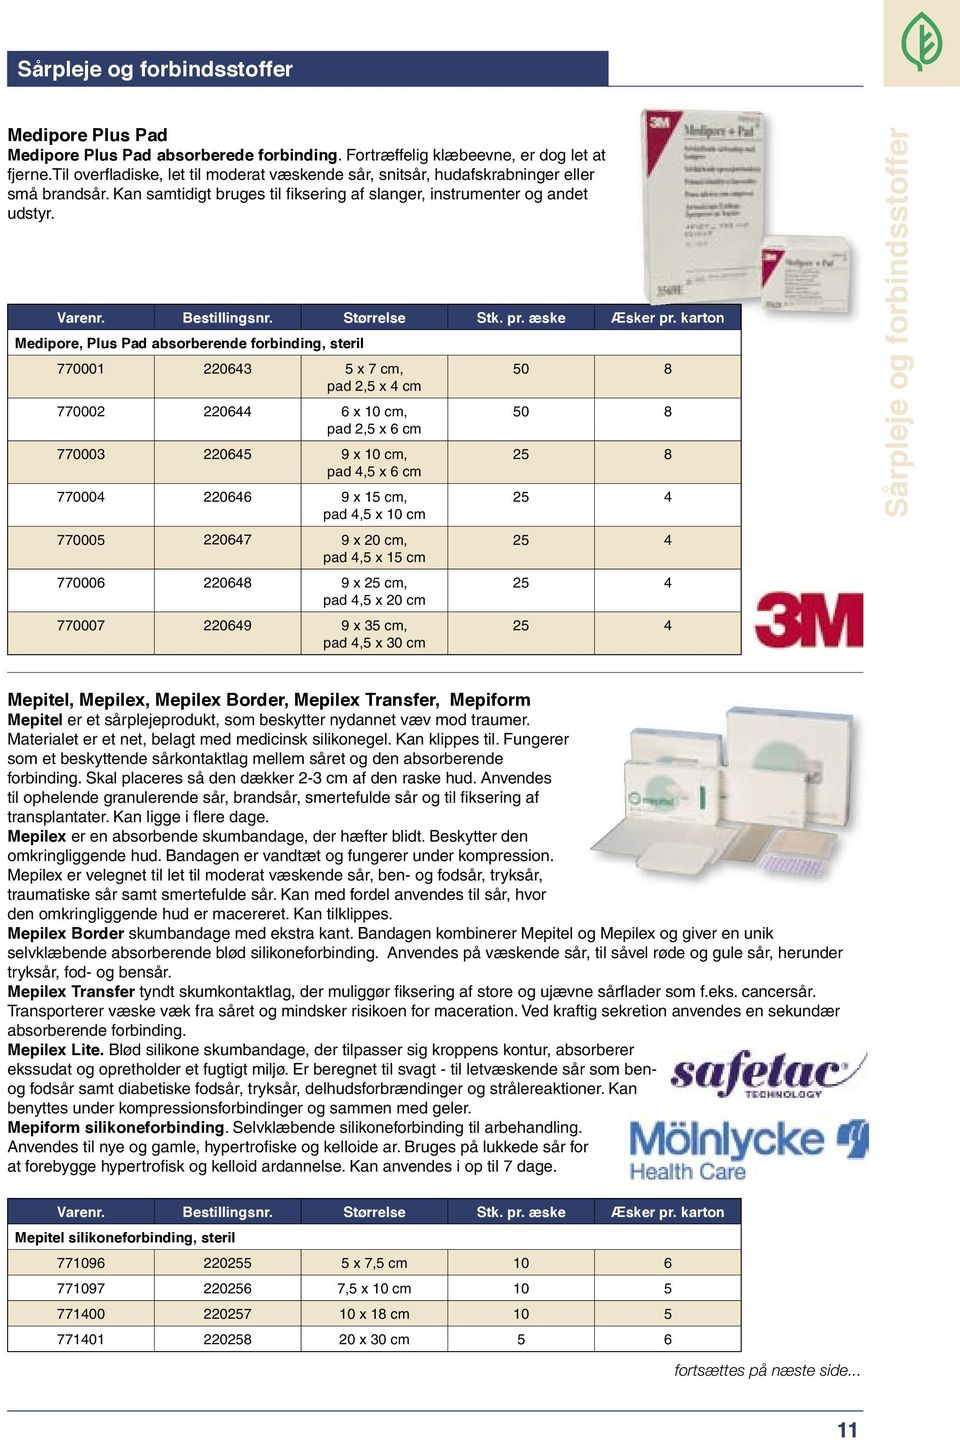 Medipore, Plus Pad absorberende forbinding, steril 770001 220643 5 x 7 cm, pad 2,5 x 4 cm 770002 220644 6 x 10 cm, pad 2,5 x 6 cm 770003 220645 9 x 10 cm, pad 4,5 x 6 cm 770004 220646 9 x 15 cm, pad